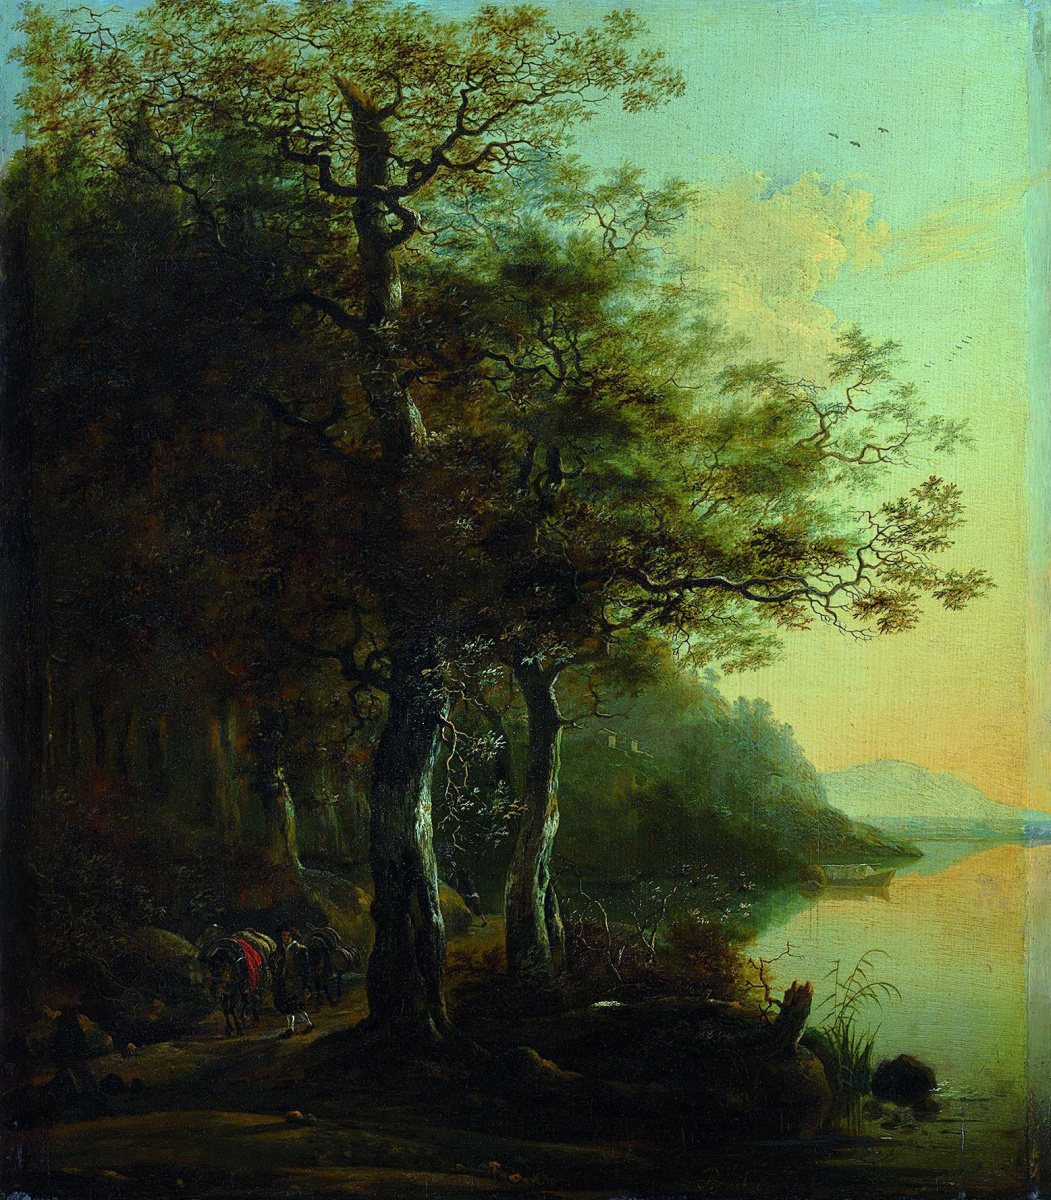 Adam Peynaker. The road under the trees by the river